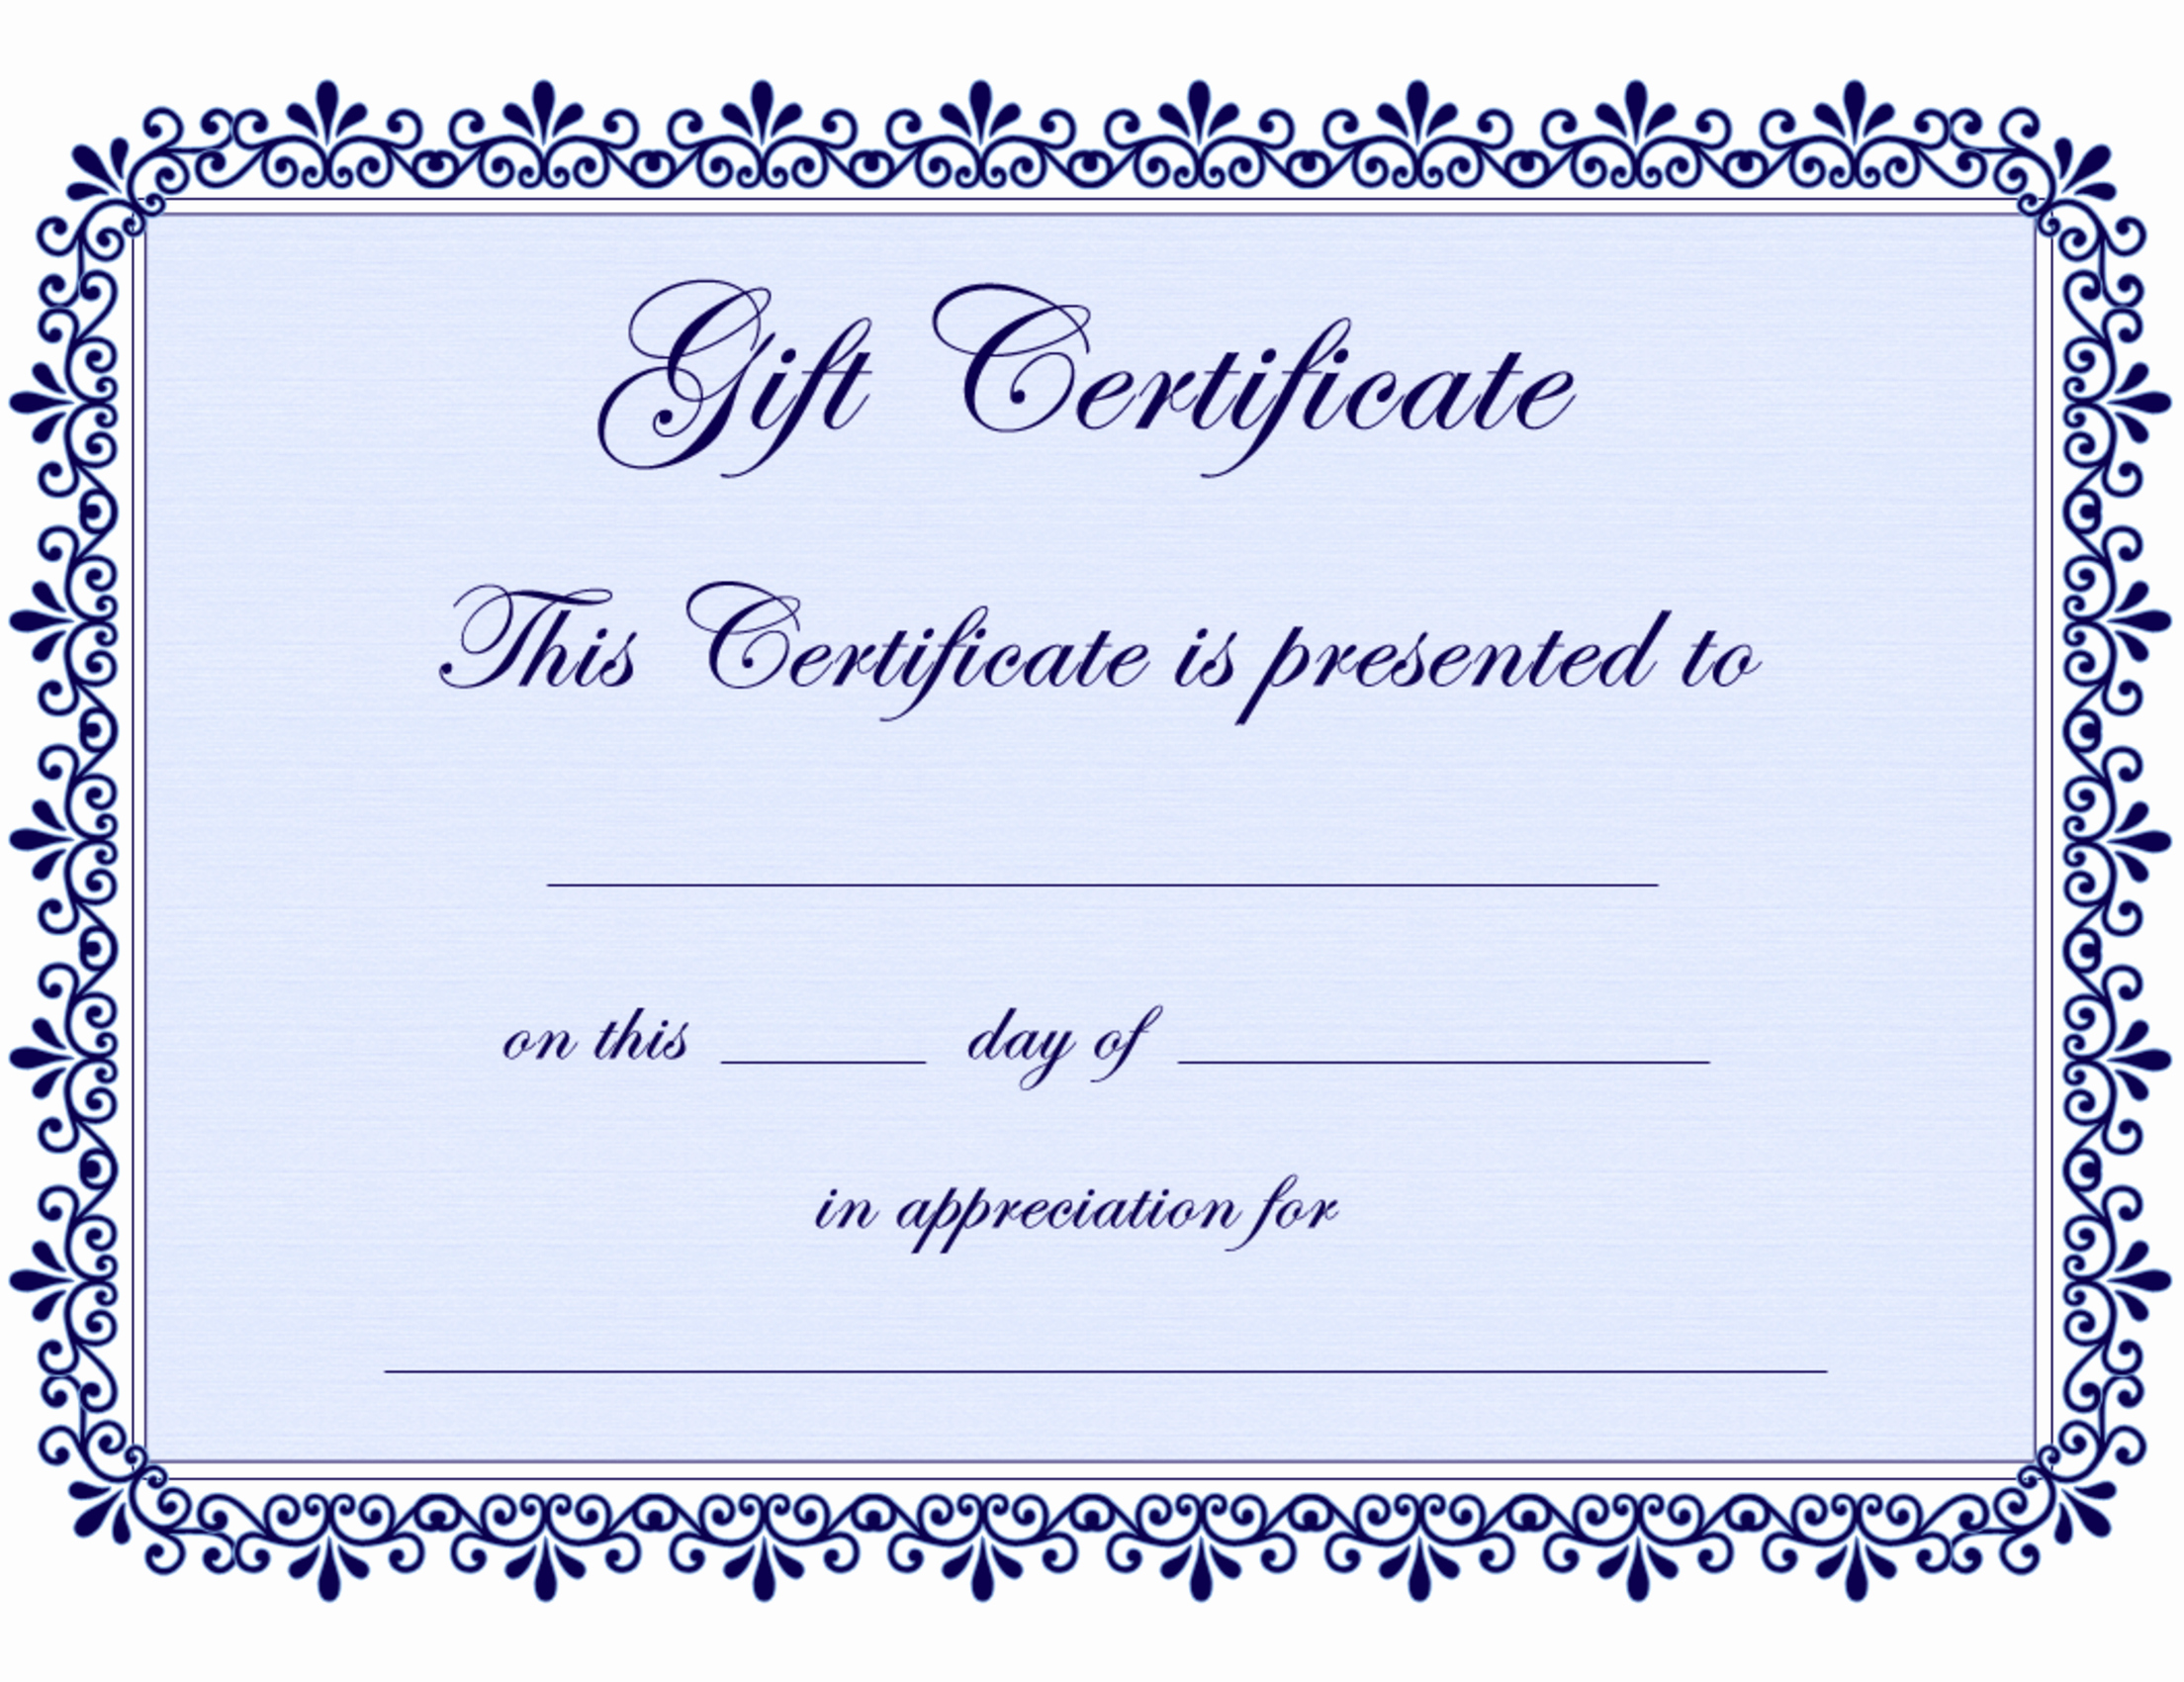 Free Gift Certificate Template Pdf Best Of Certificate Templates